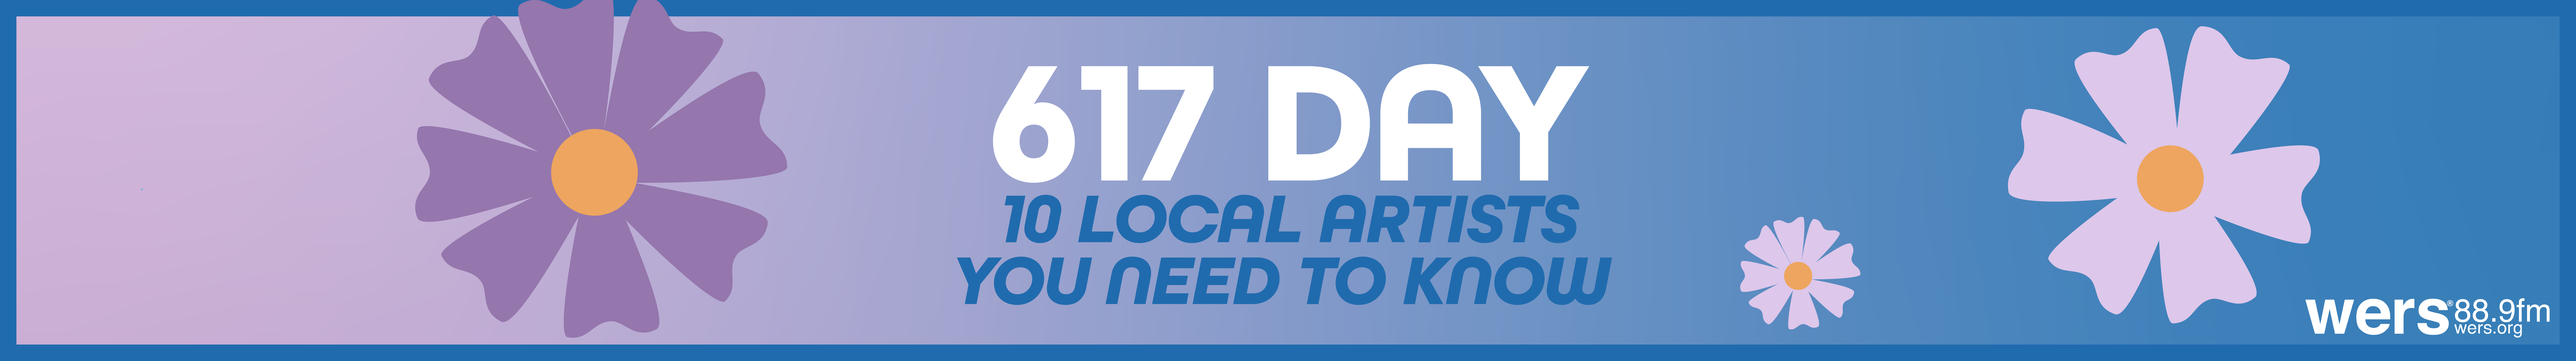 617: 10 Local Artists